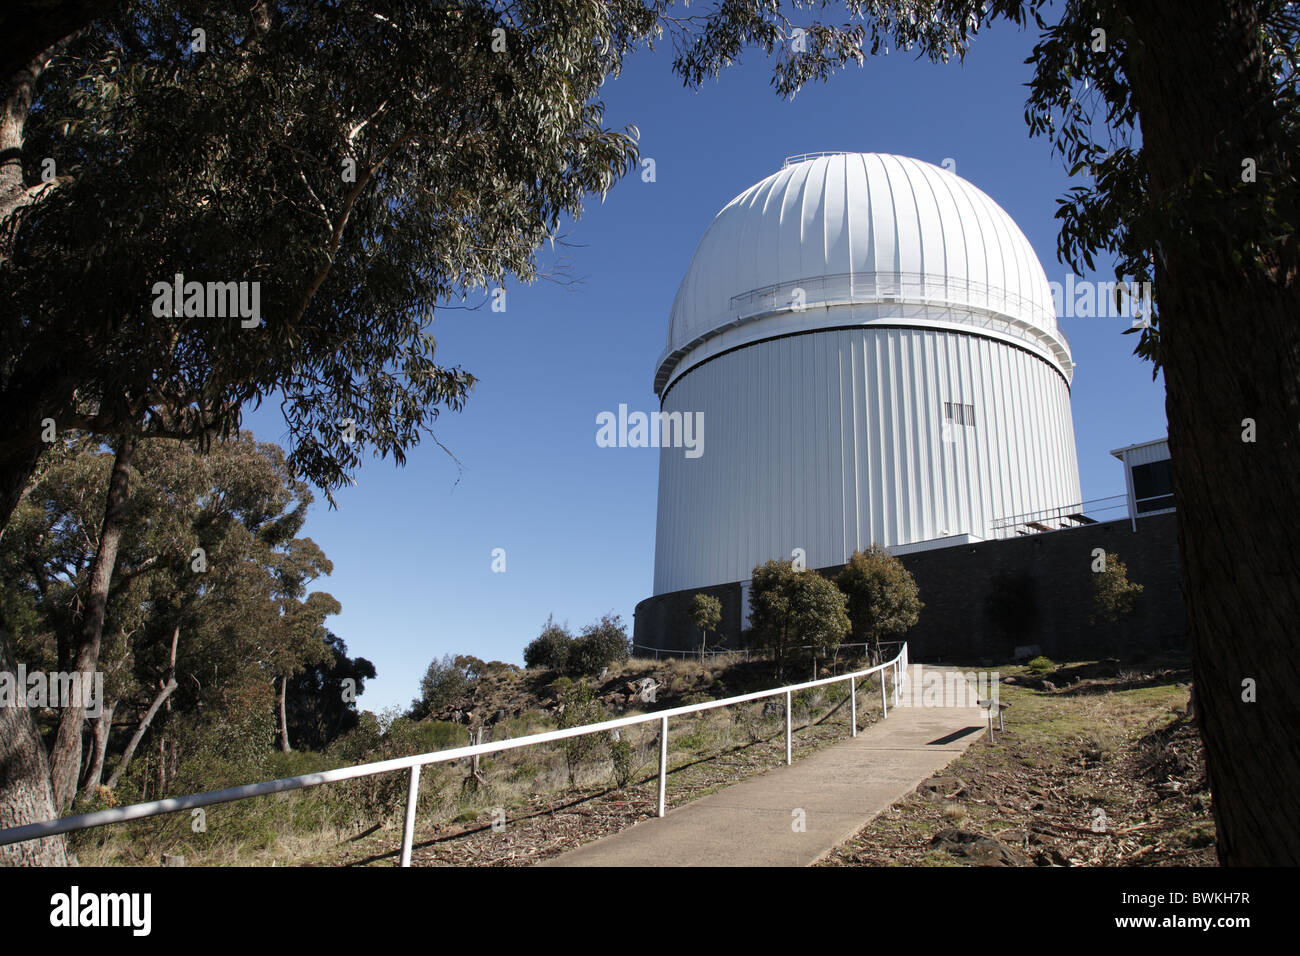 Australia, New South Wales, Coonabarabran, Siding Spring Observatory, Astronomy and Astrophysics Telescope Dome - Stock Image